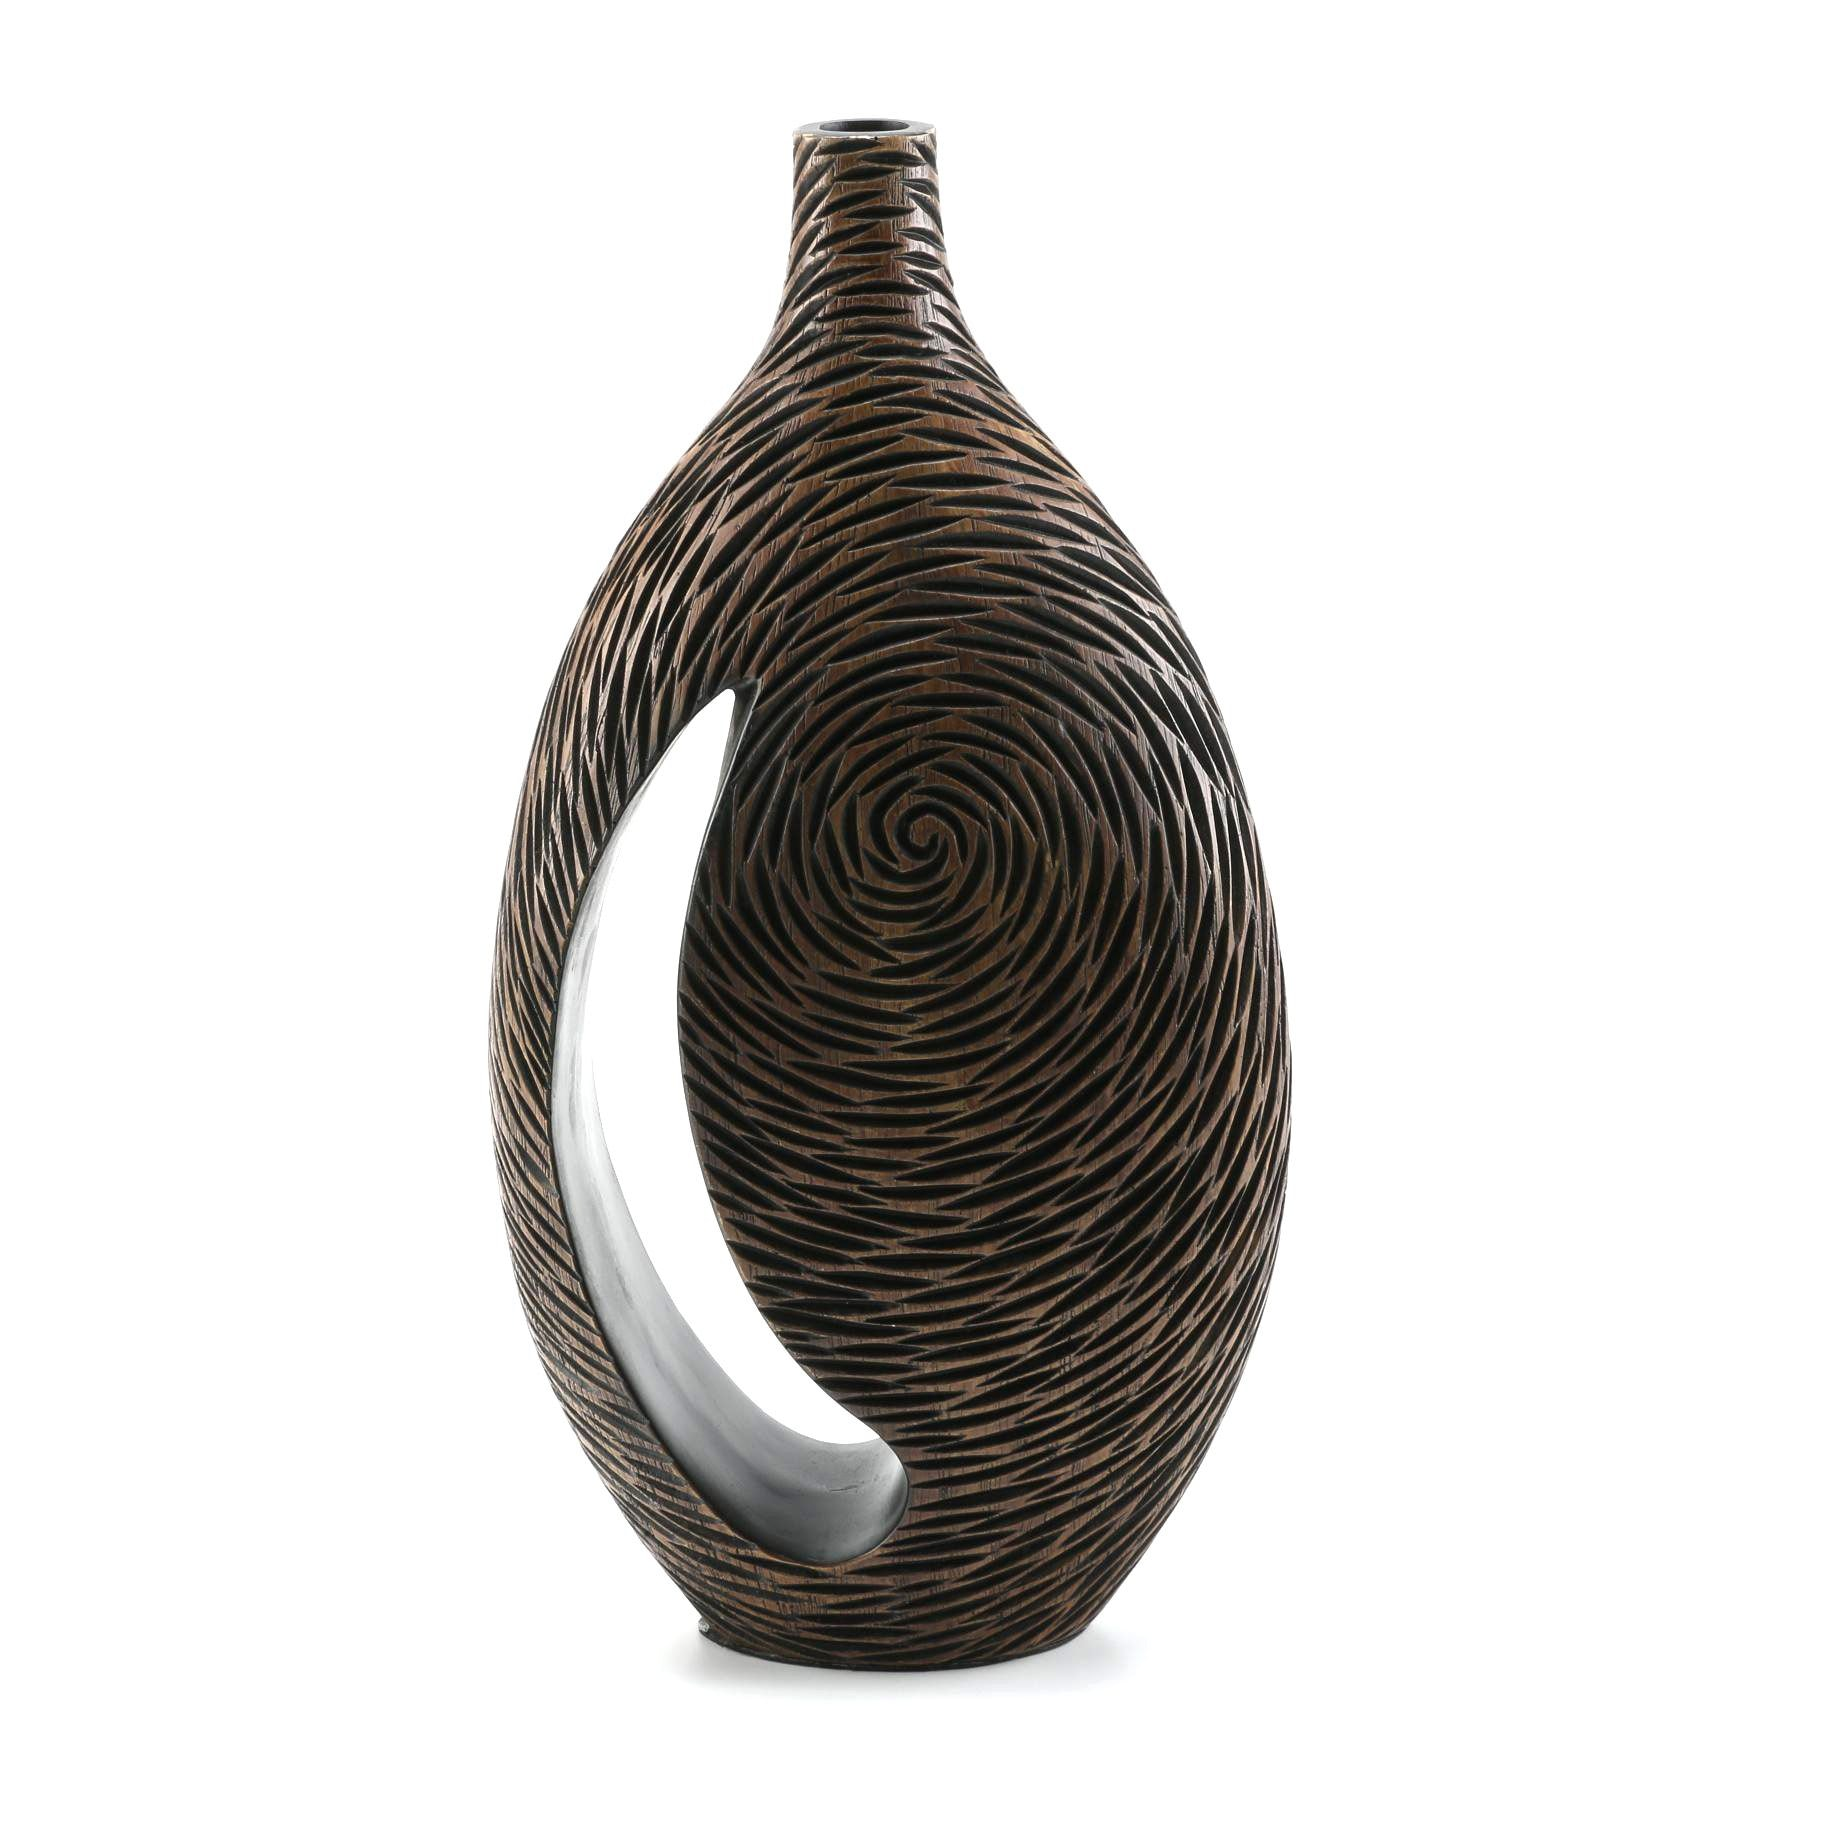 Ceramic Vase Carved in the Appearance of Wood